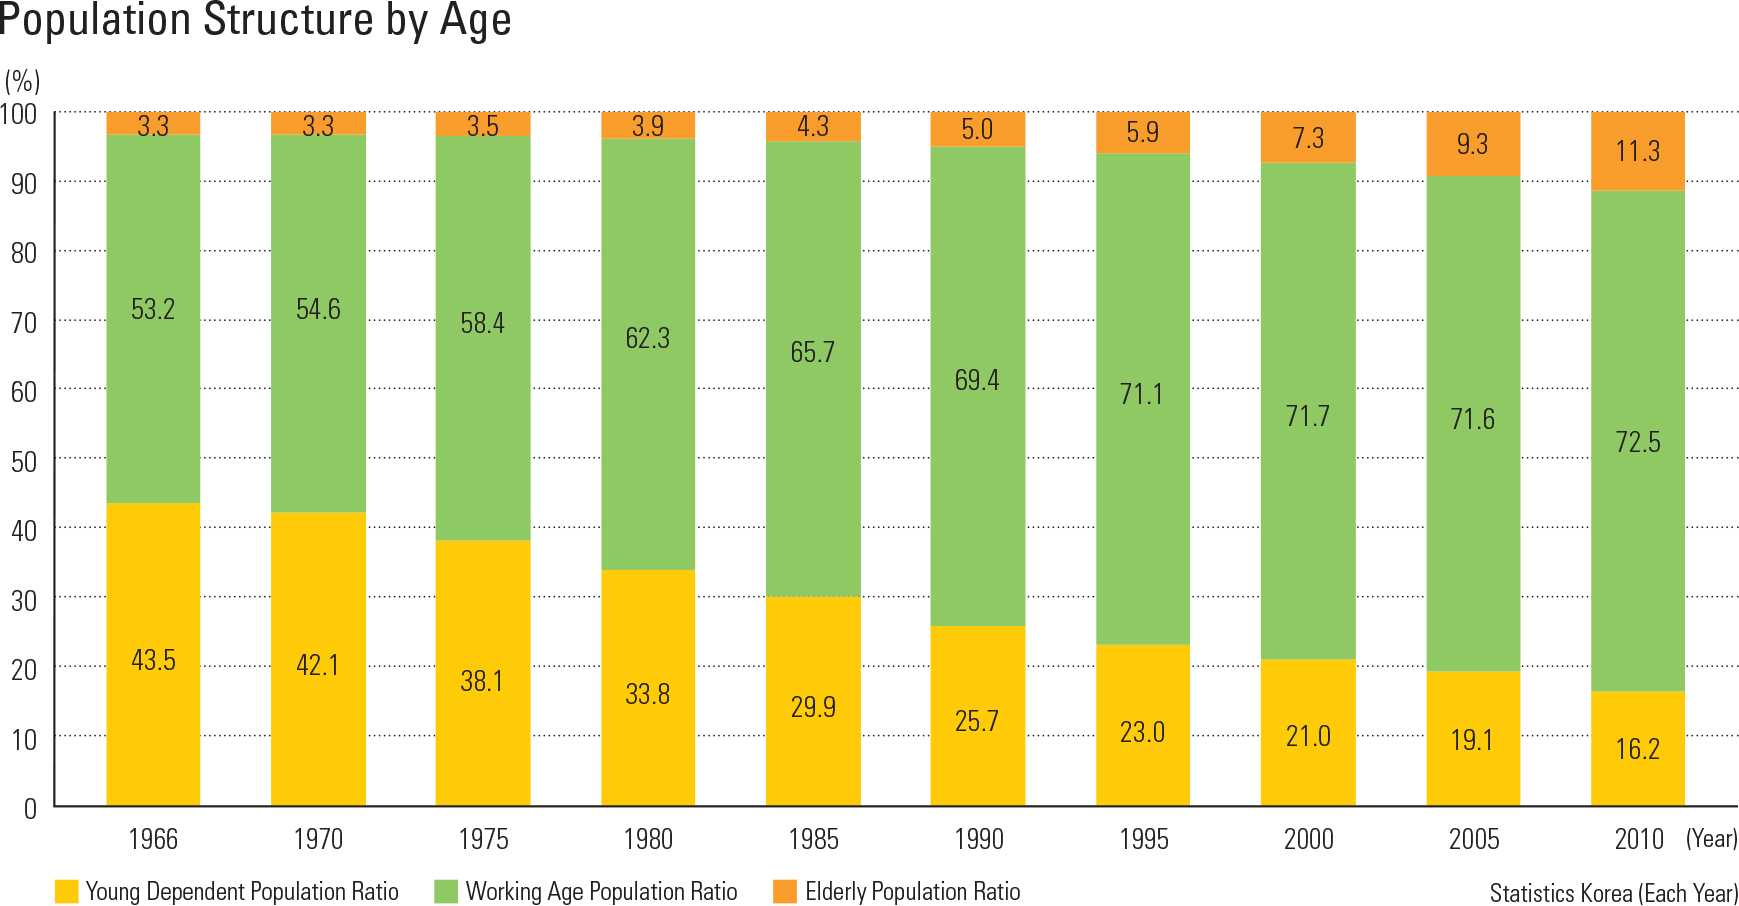 Population Structure by Age